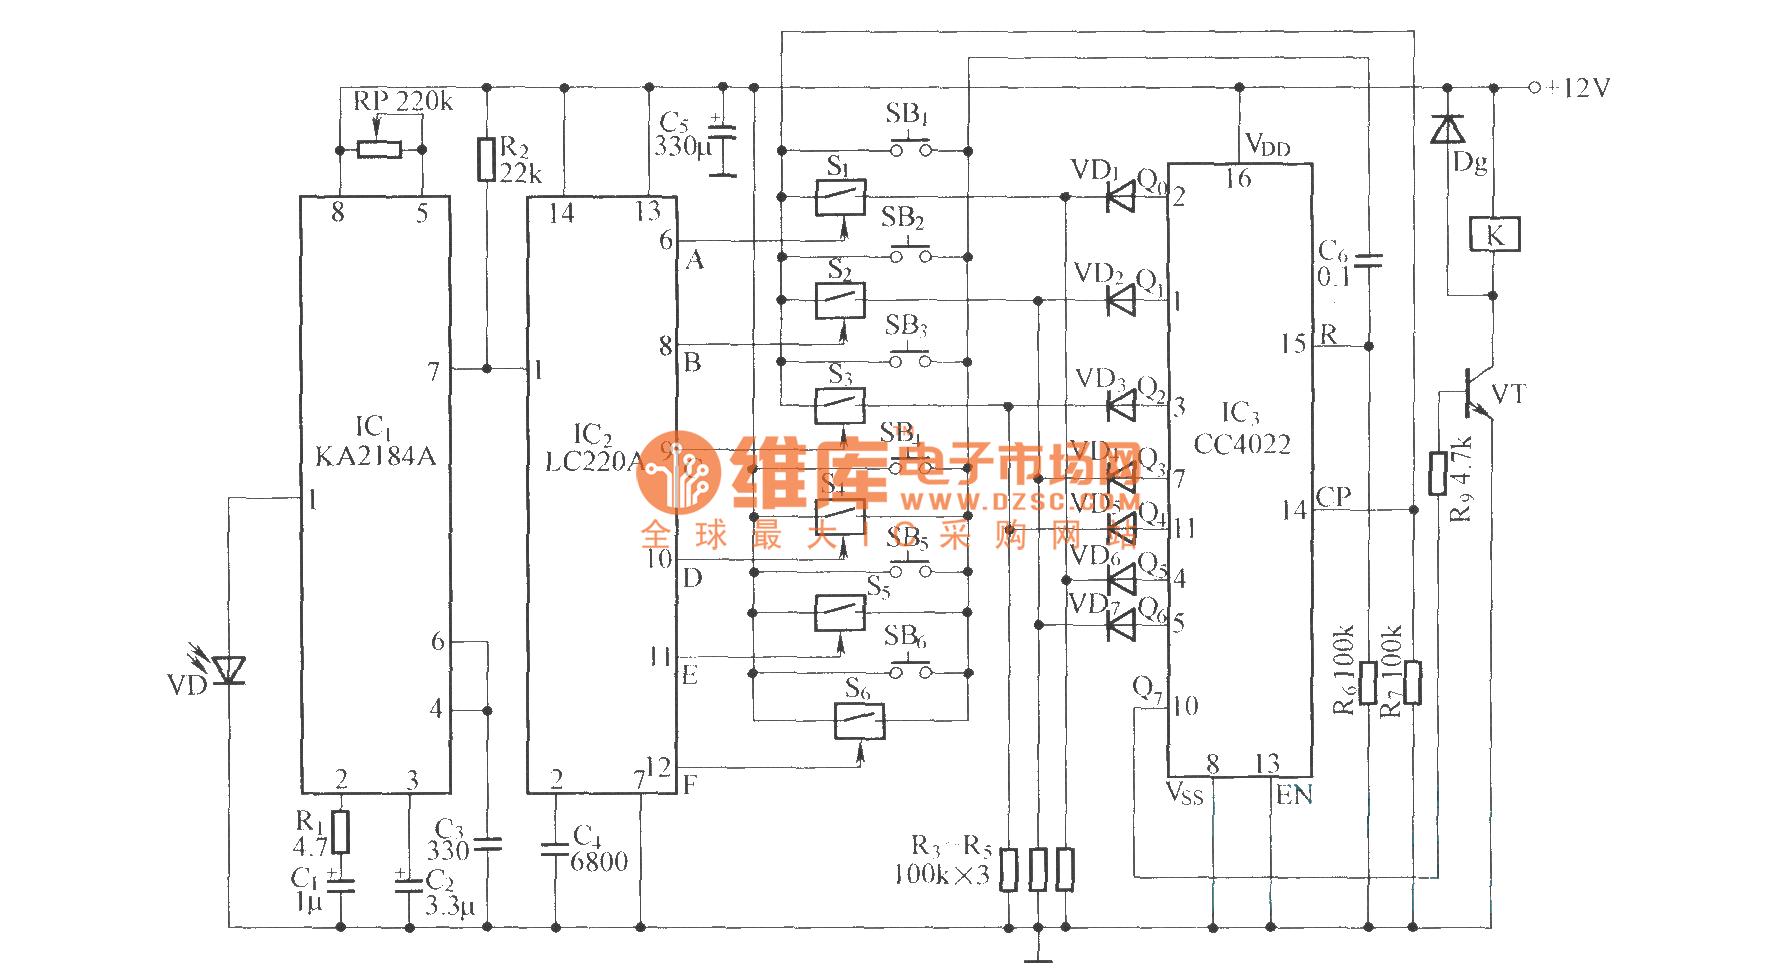 infrared remote control code switch circuit